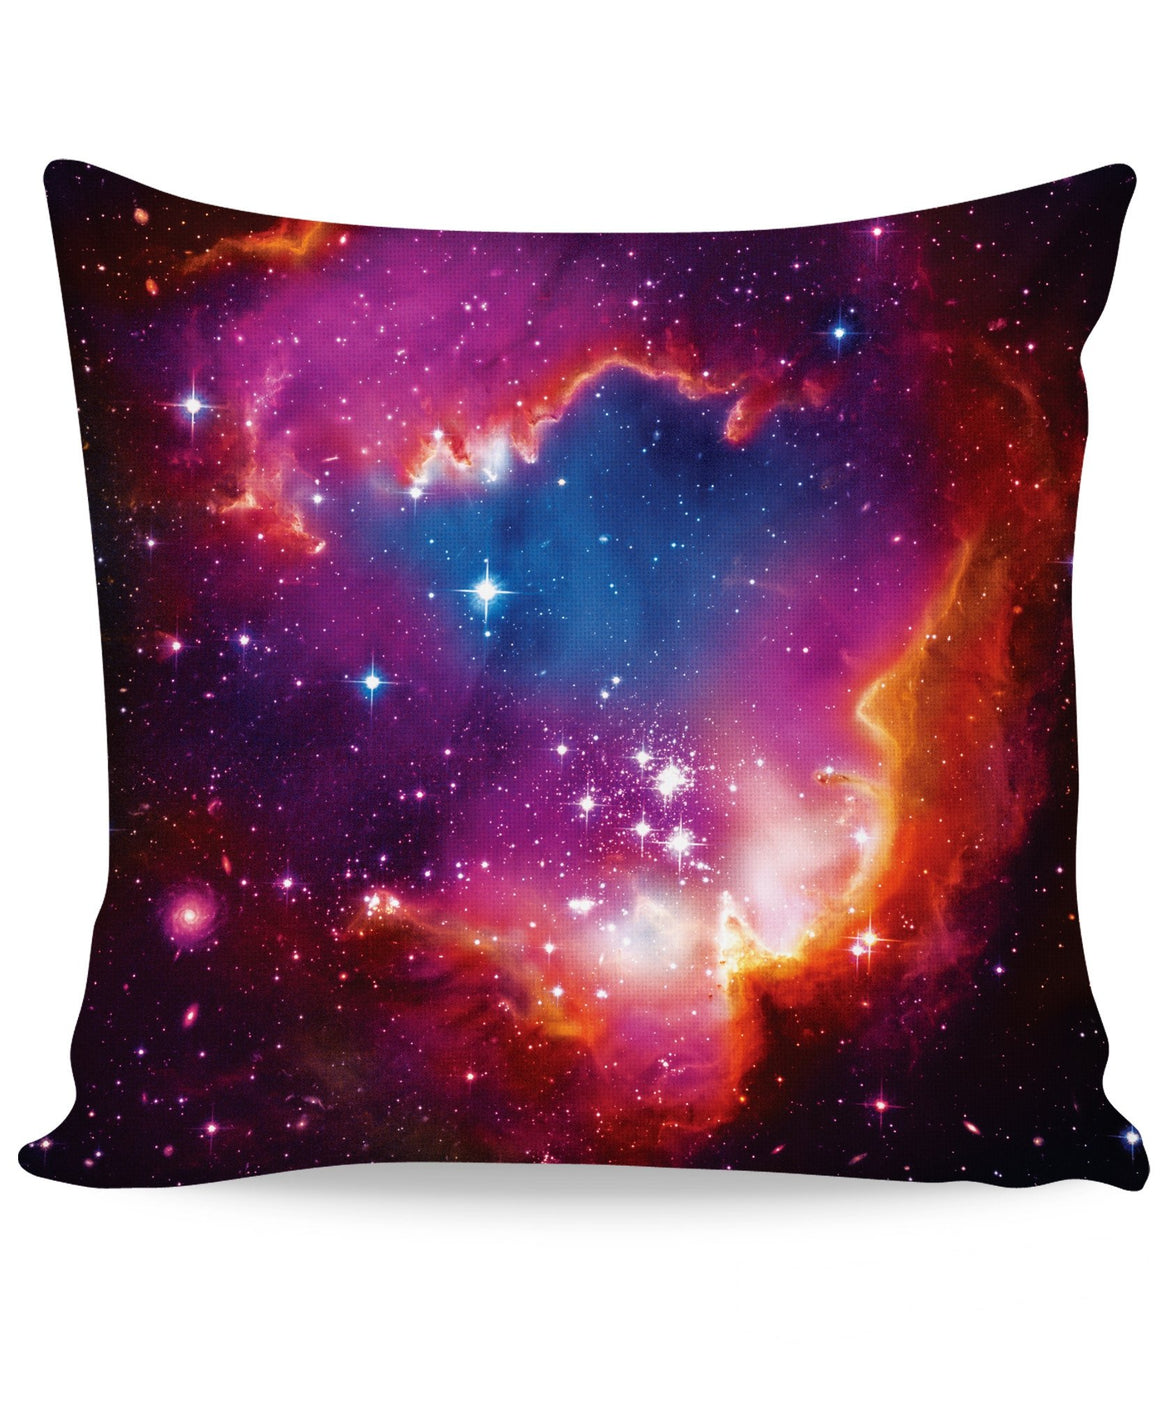 Cosmic Forces Couch Pillow - 5and15